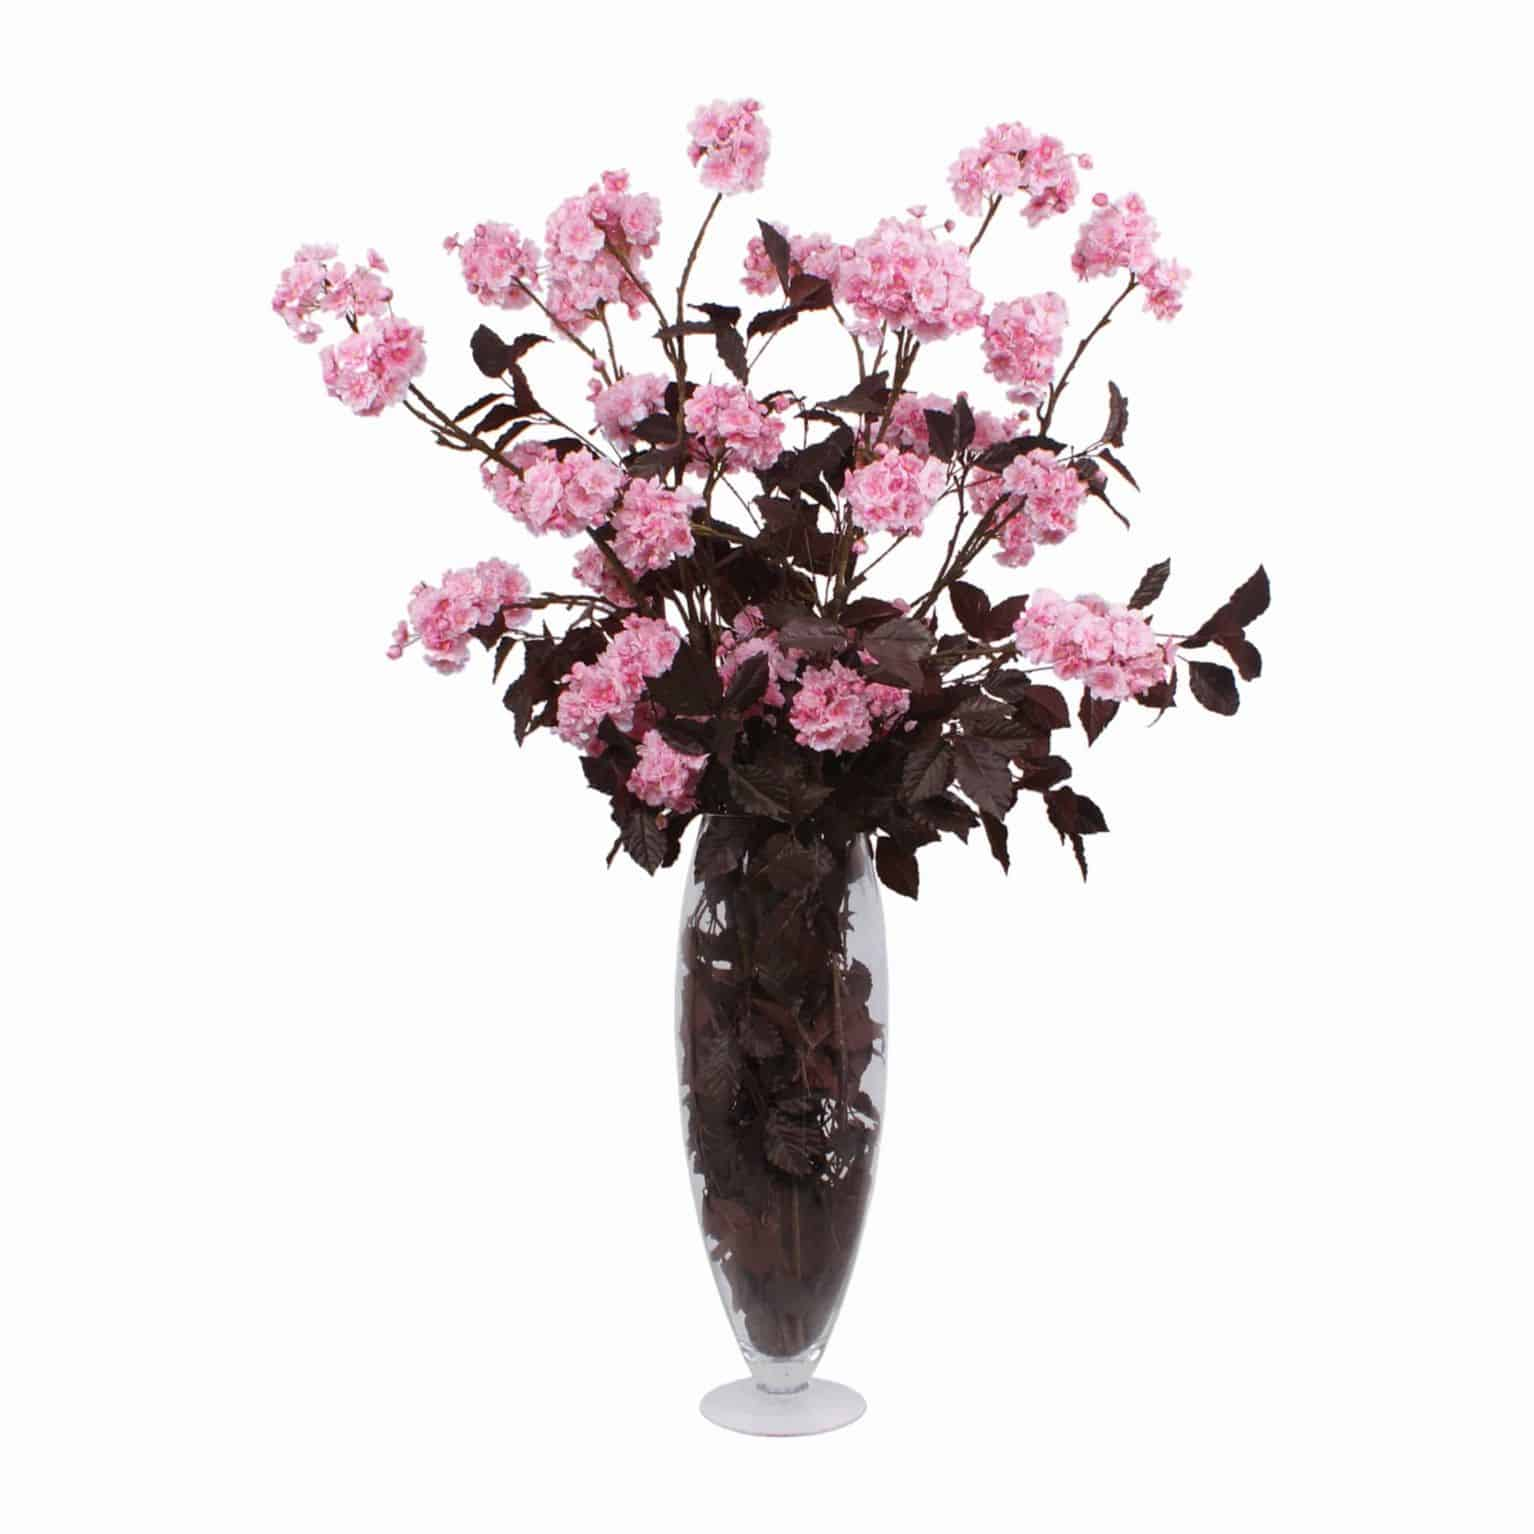 Buy our contemporary cherry blossom artificial flower arrangement. Each flawless stem of many petal pink heads contrasted by rich chocolate beechwood.